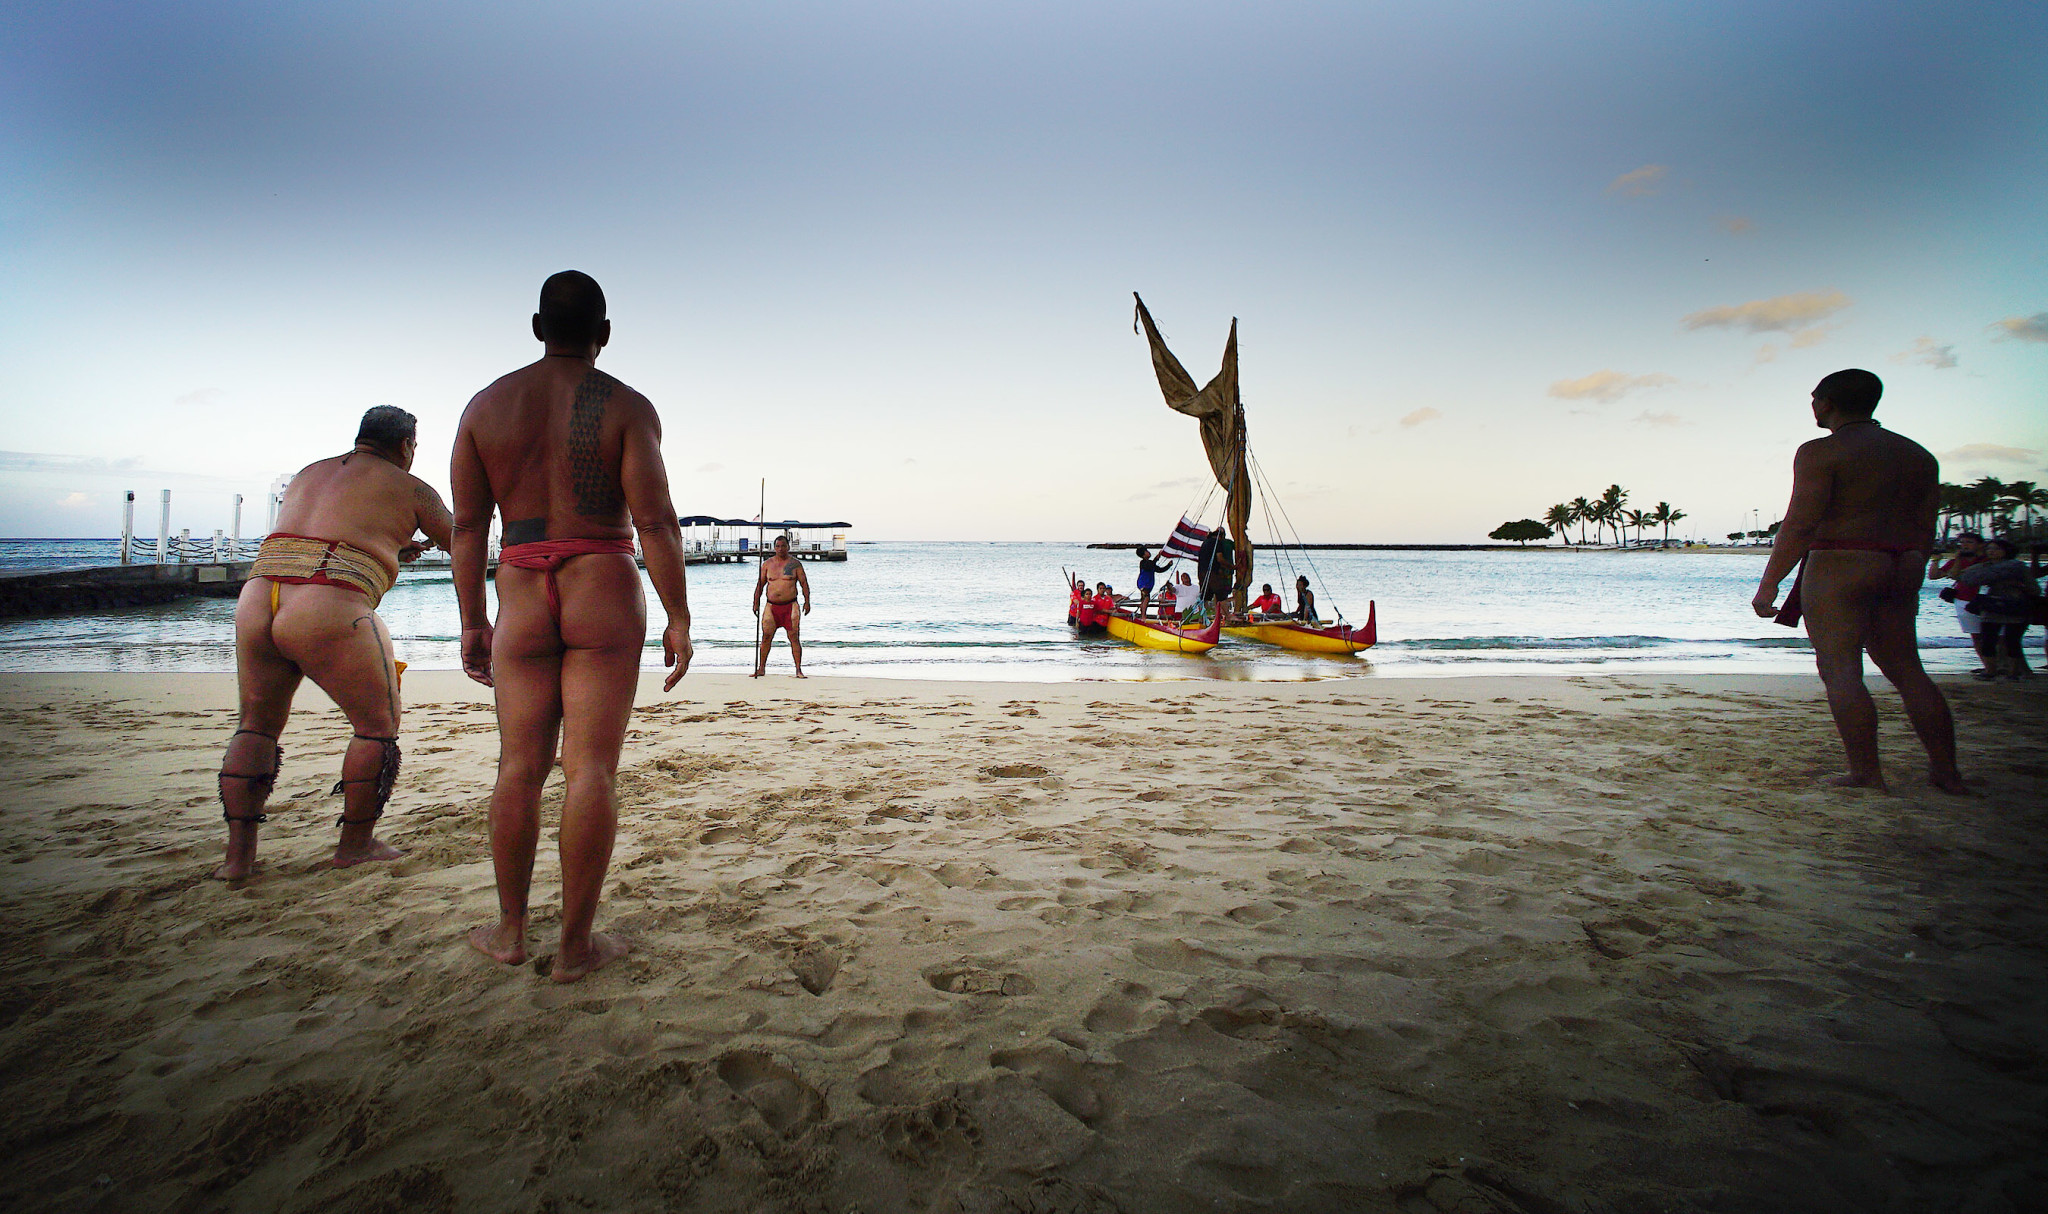 <p>In an event heralding the first morning of the World Conservation Congress, a double-hulled canoe arrived Thursday on Waikiki Beach and was greeted by men in malo — traditional Hawaiian warrior garb — who threw a spear and presented a welcoming gift of a coconut plant.</p>